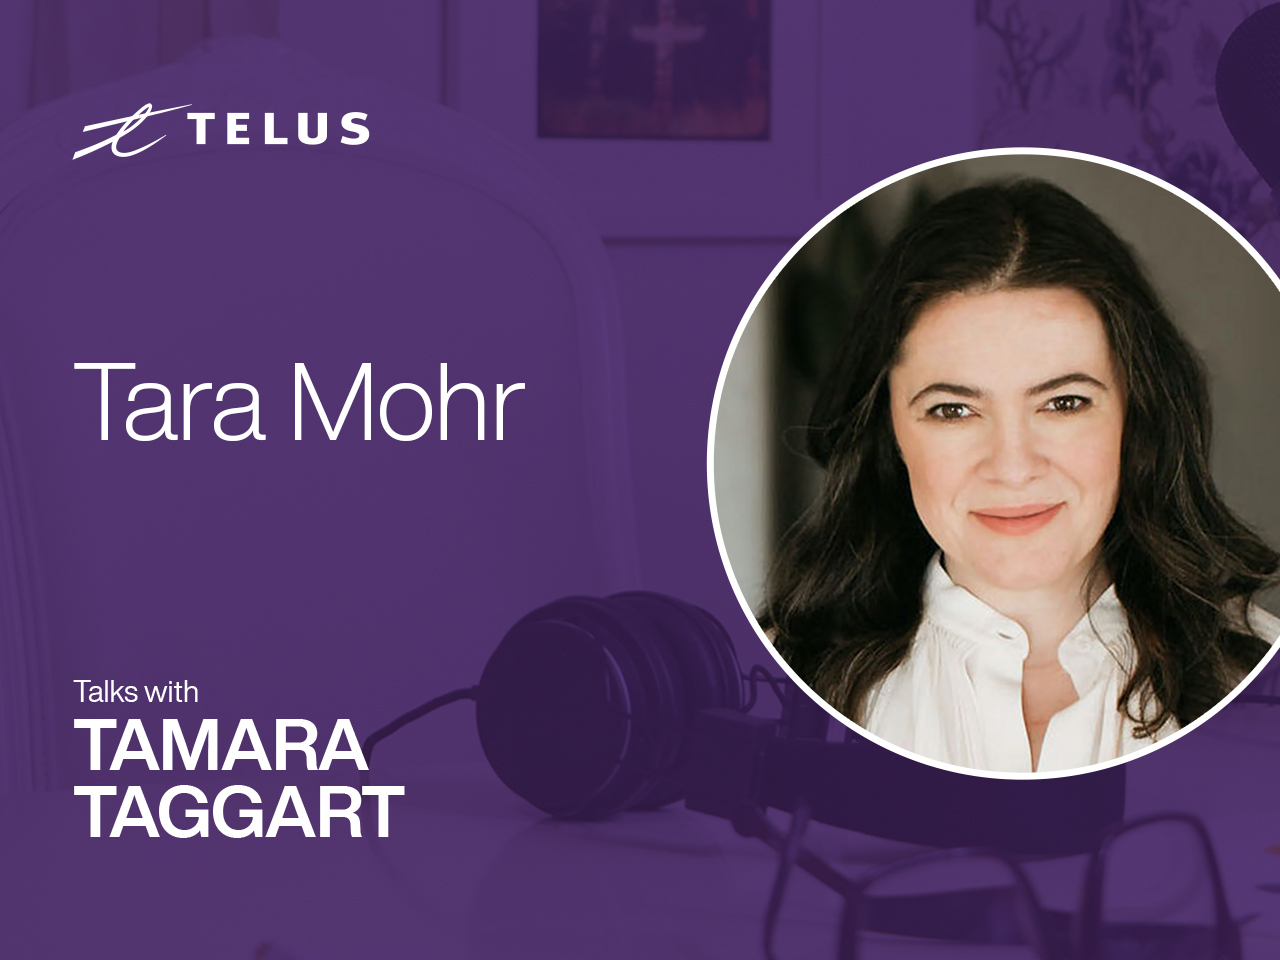 Women's leadership expert Tara Mohr